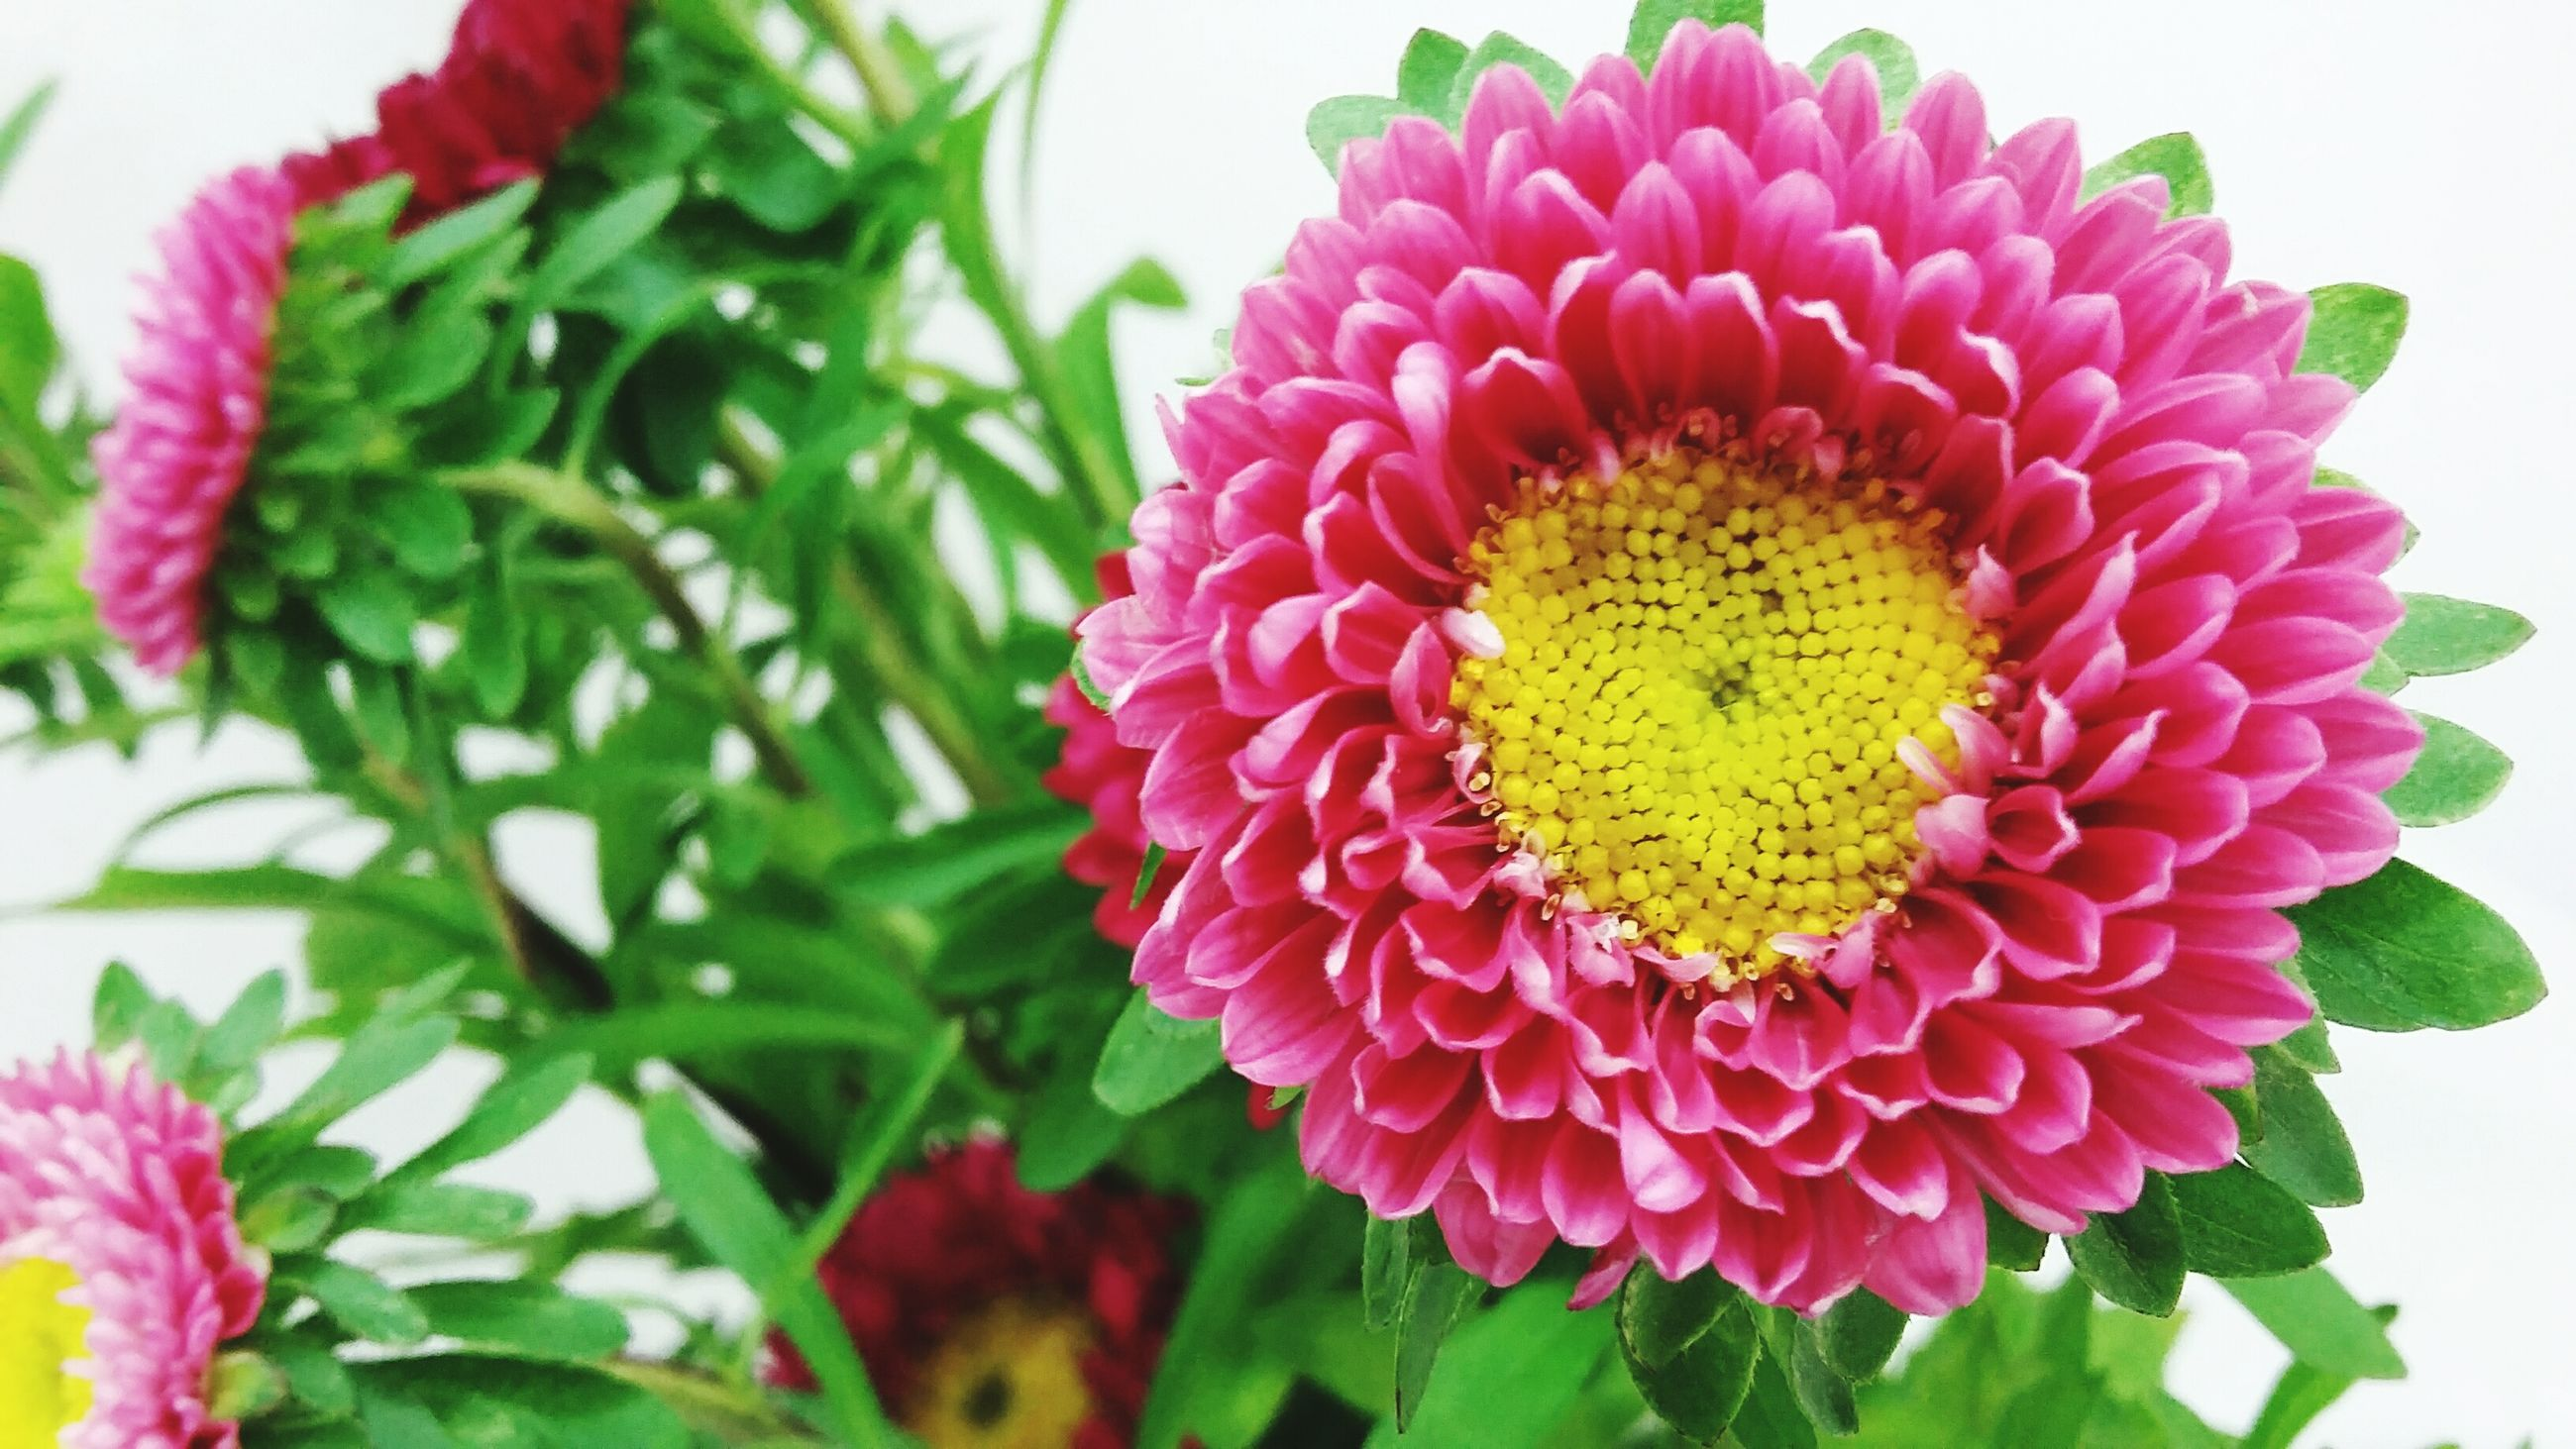 flower, freshness, petal, fragility, flower head, growth, beauty in nature, close-up, plant, blooming, pink color, nature, leaf, pollen, focus on foreground, red, in bloom, no people, day, indoors